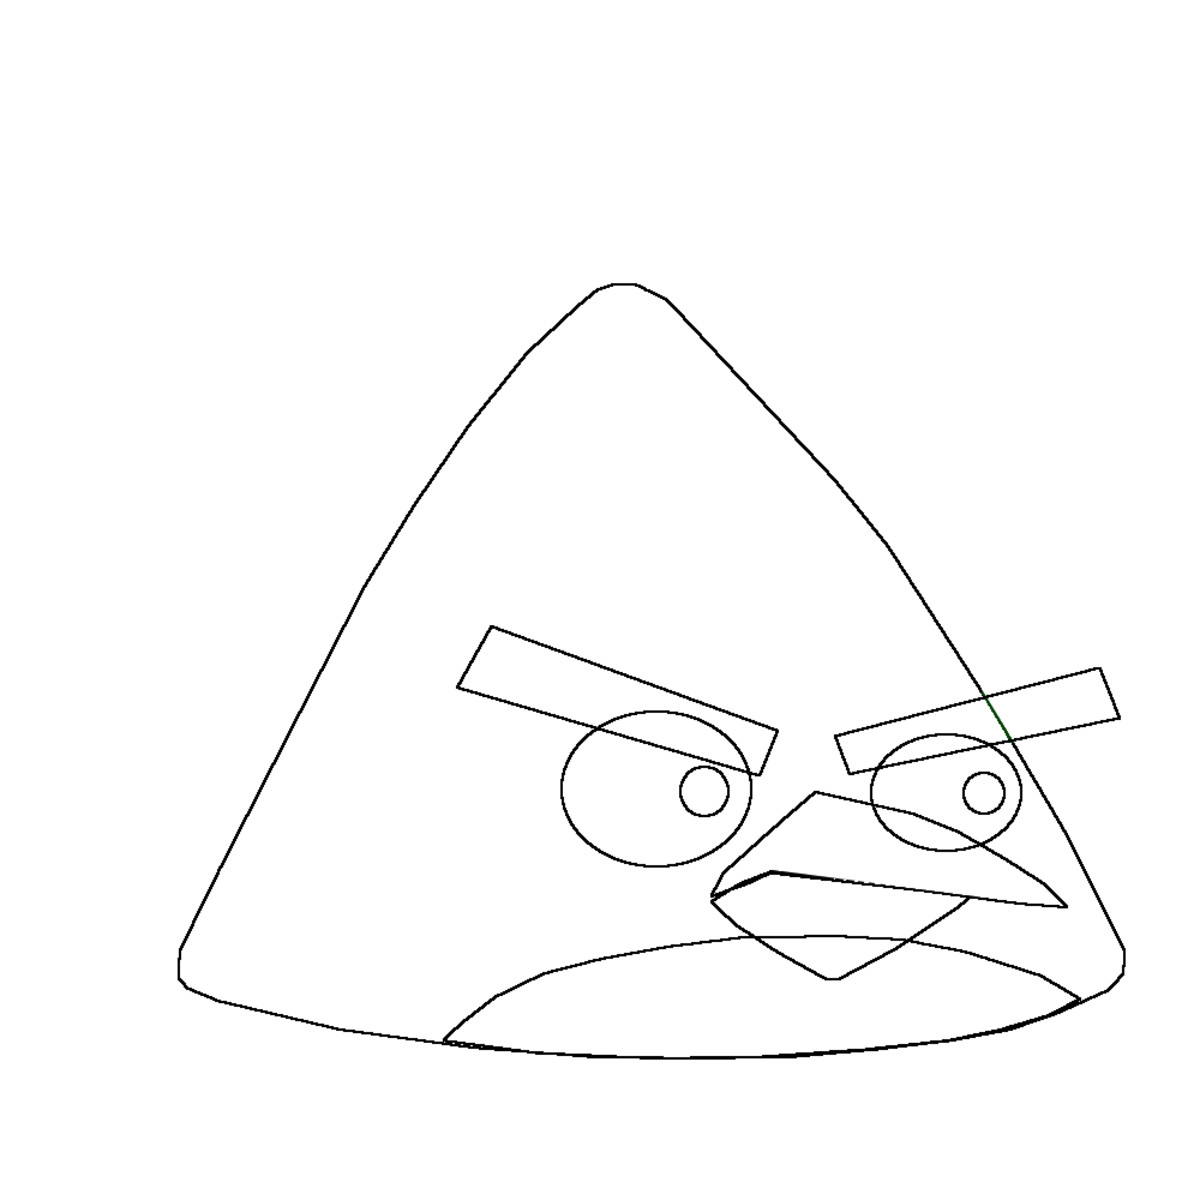 The beak area of the Angry Bird.